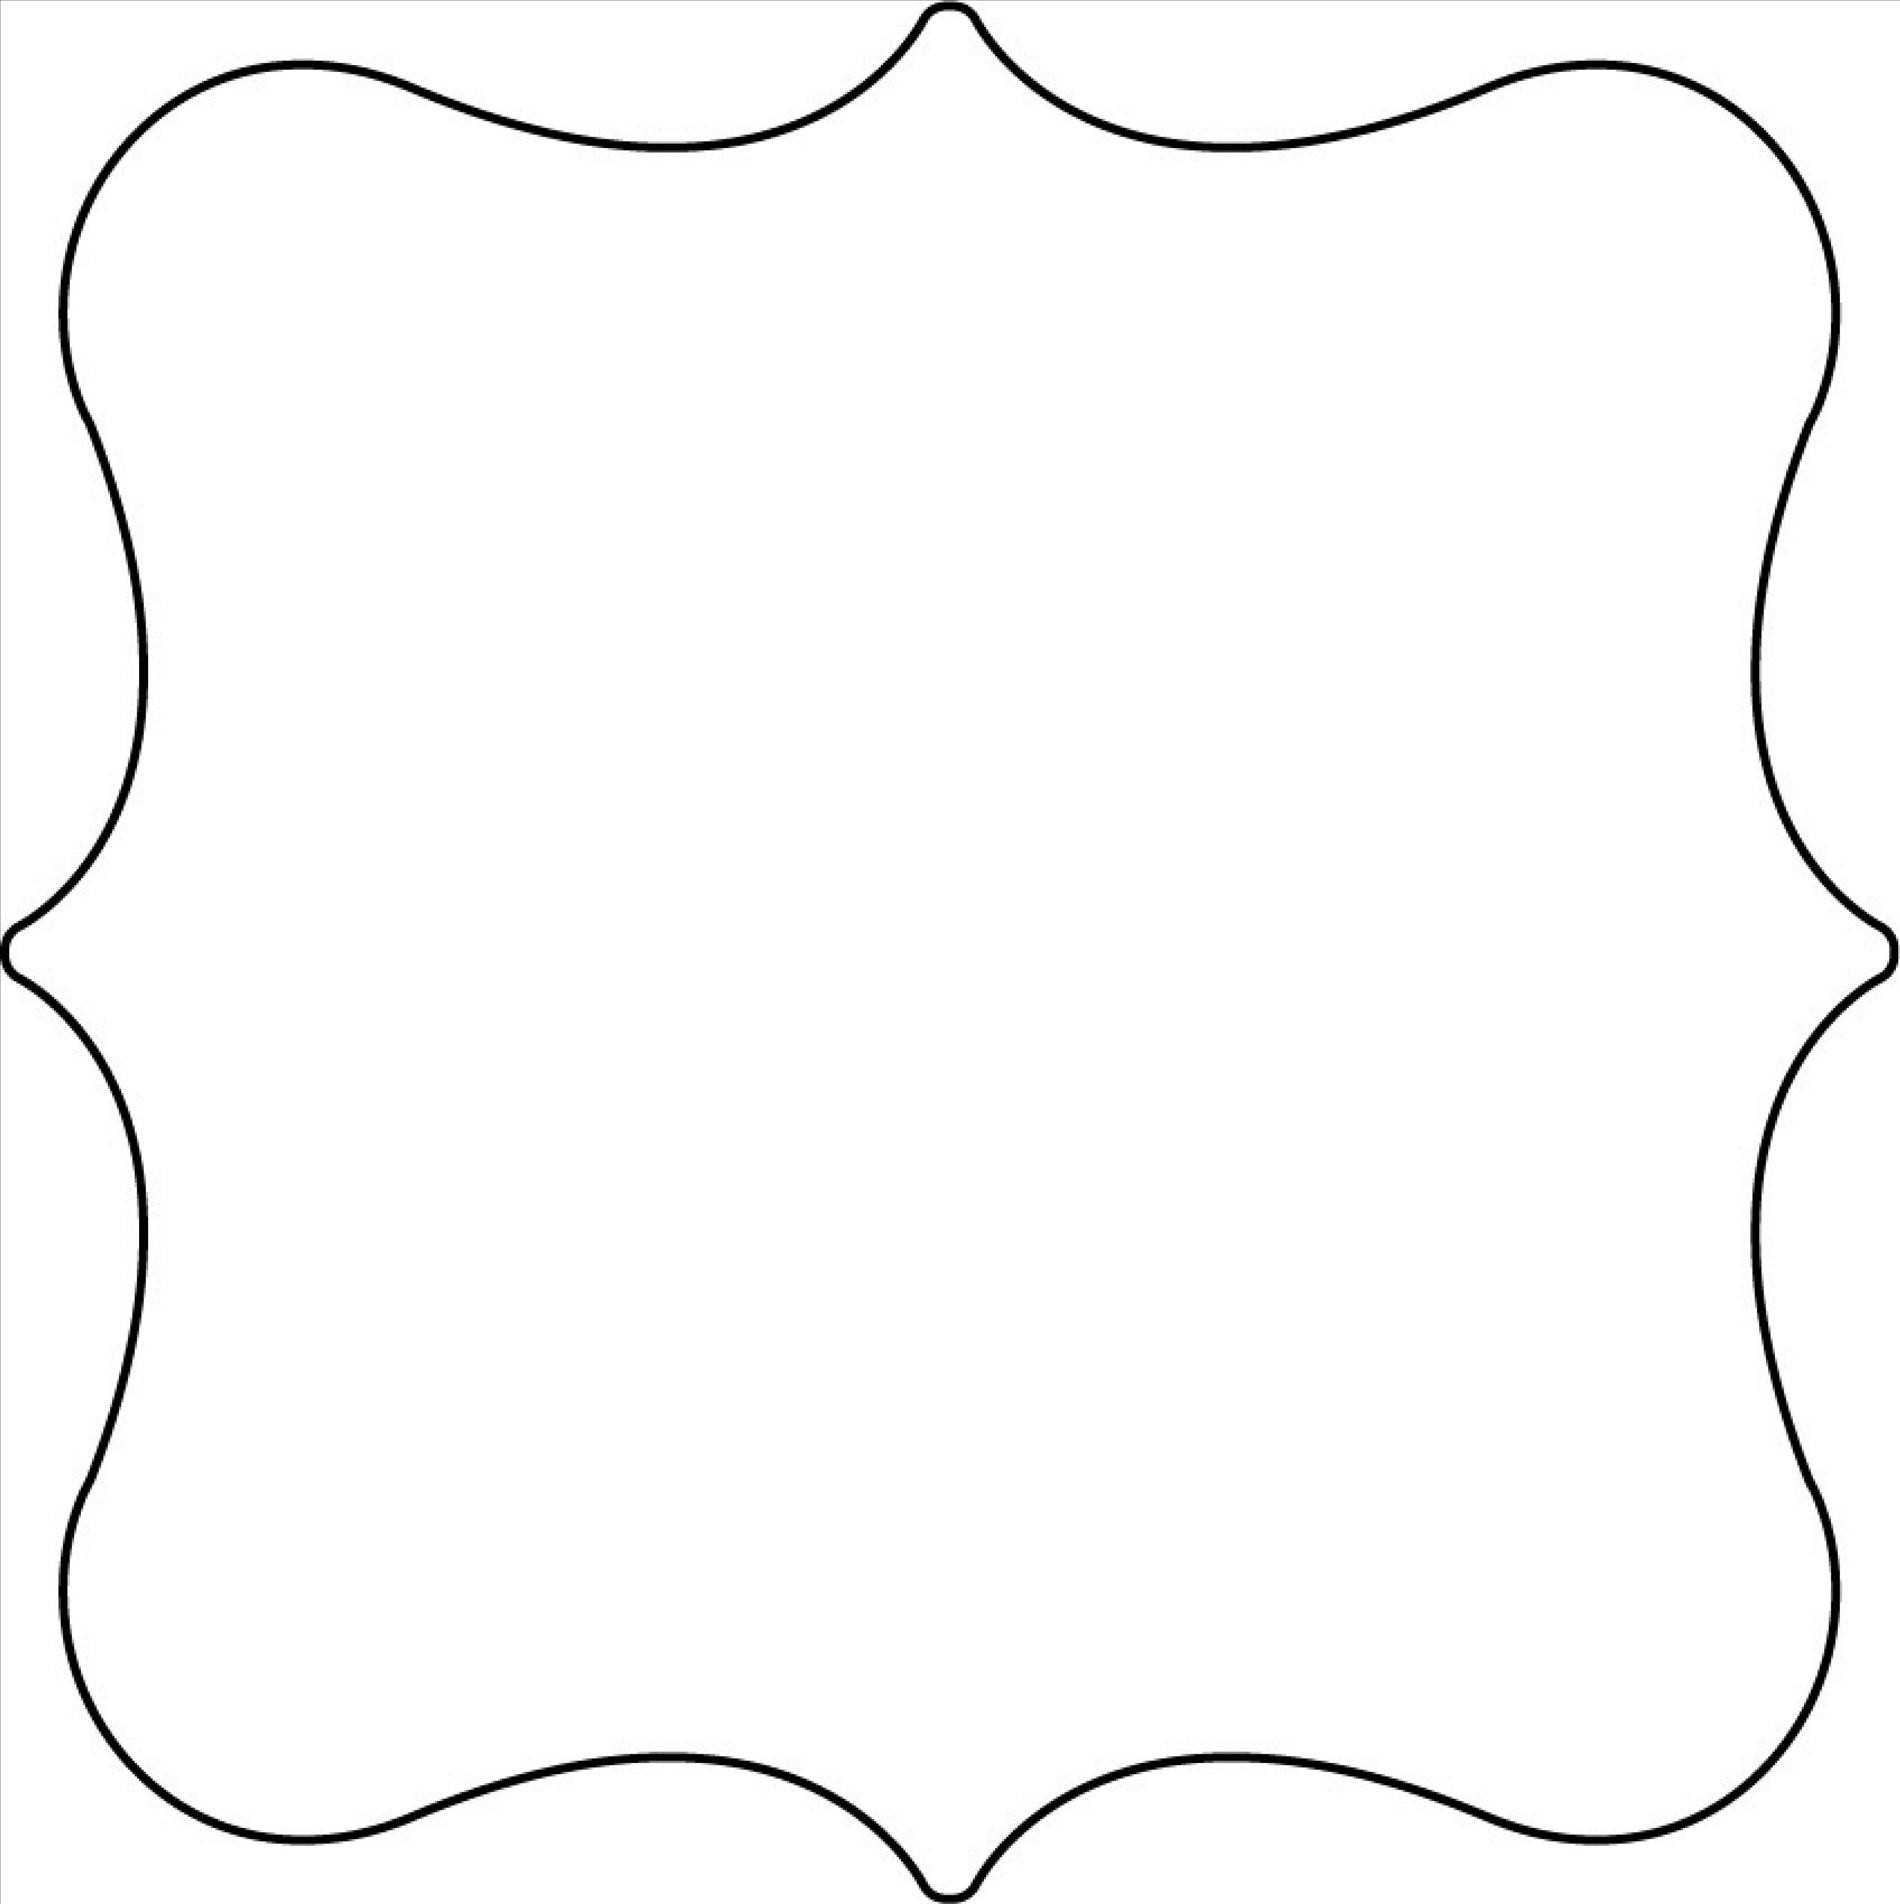 Plaque clipart shape outline. Design decoration ideas group